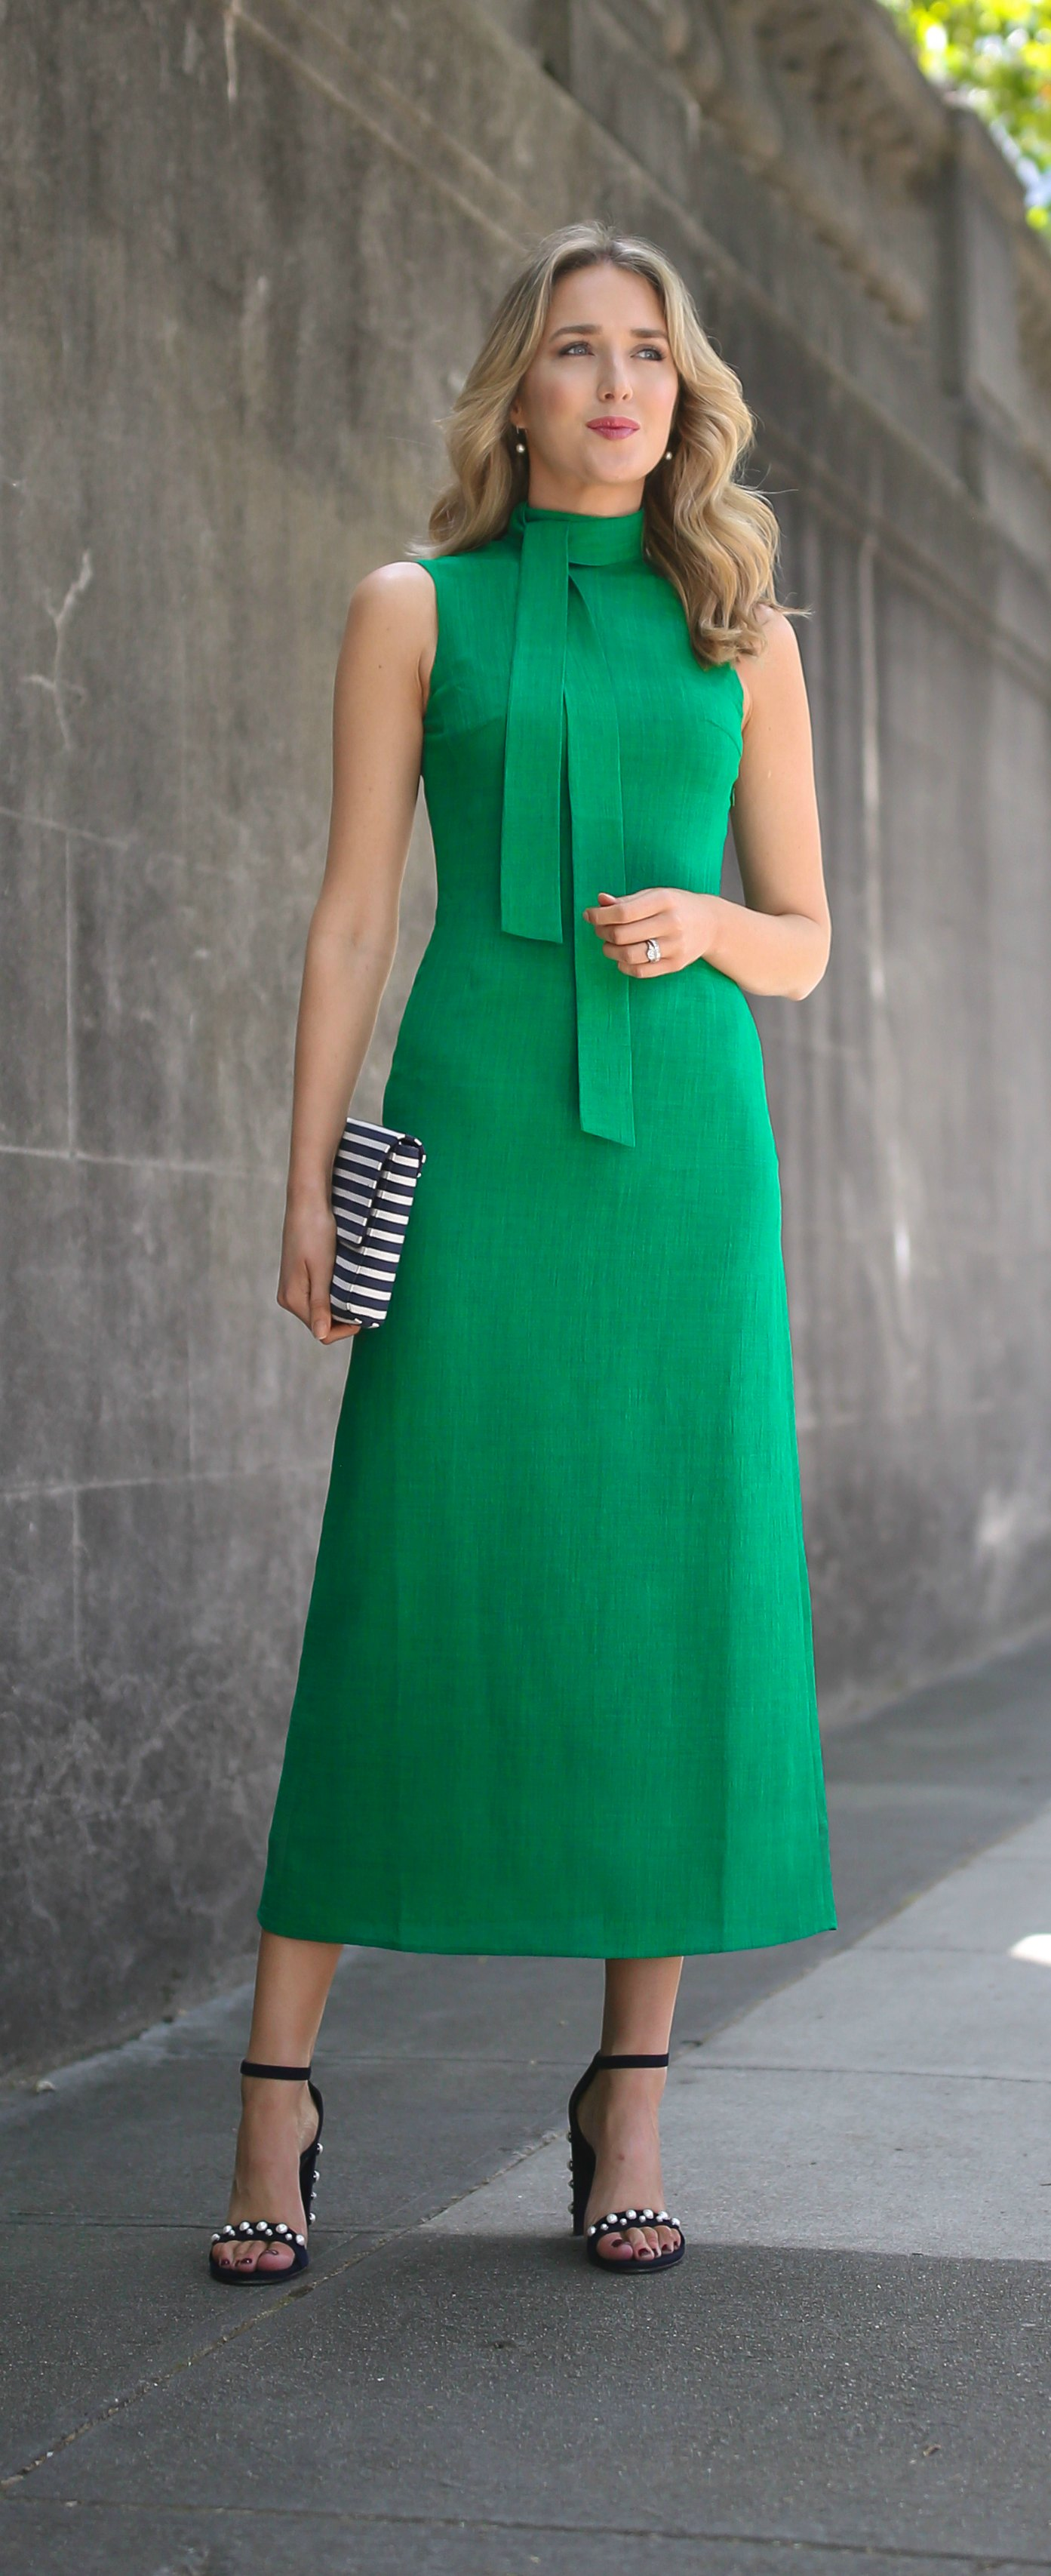 kelly green midi dress with tie neck detail, navy blue suede ankle strap sandals pearl embellished detail and block heel, navy and